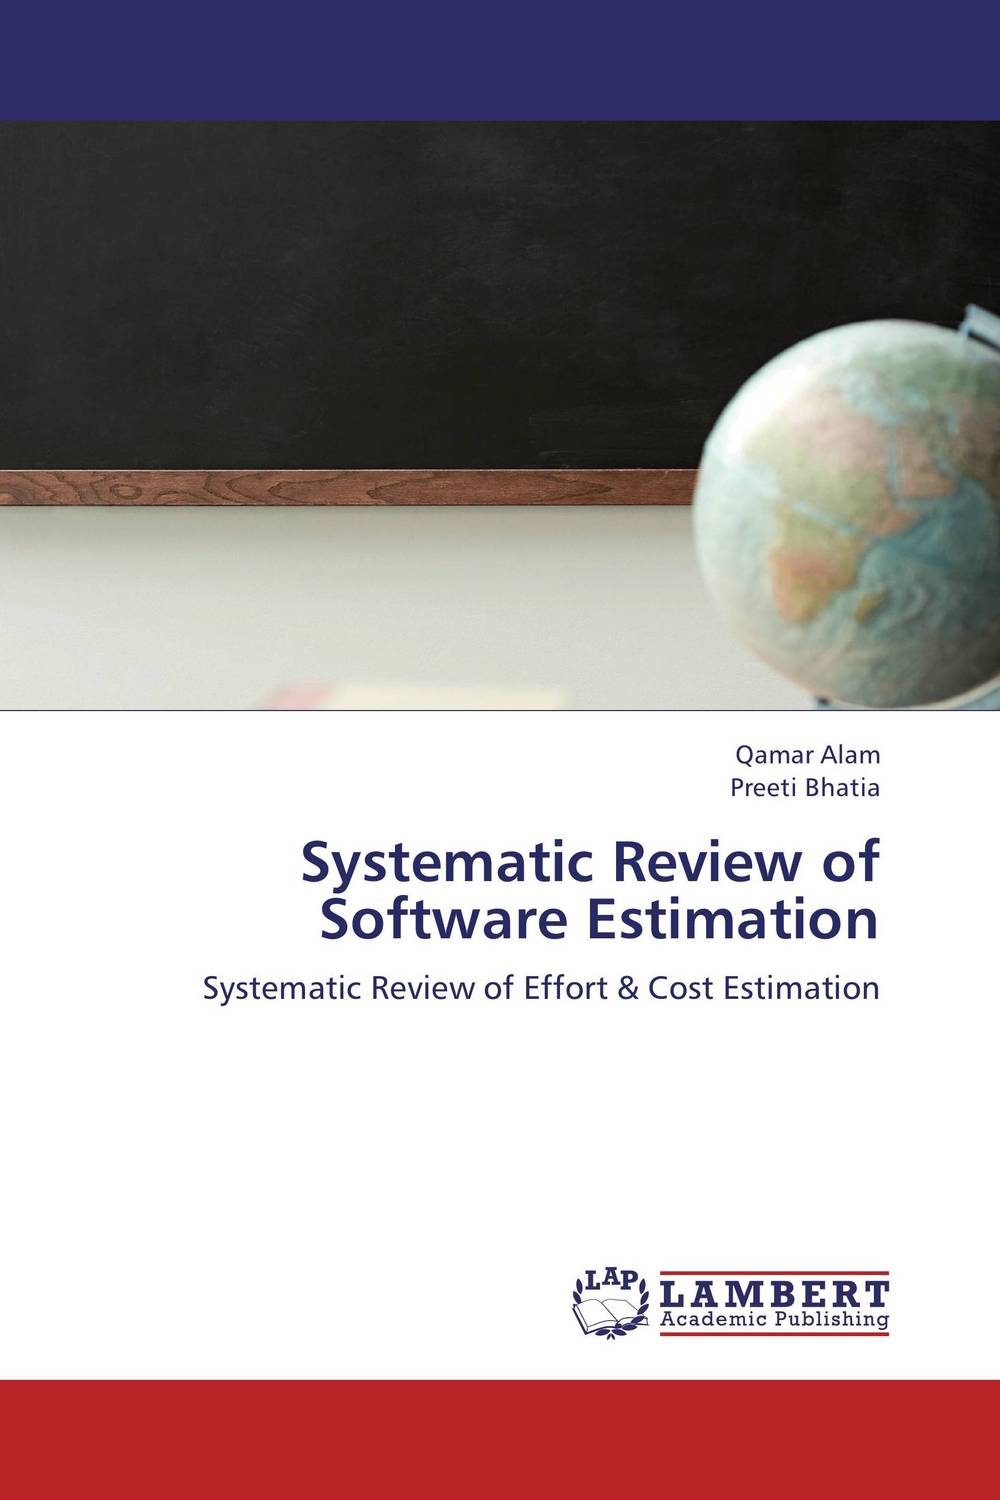 Systematic Review of Software Estimation a novel software cost estimation techniques using fuzzy methods